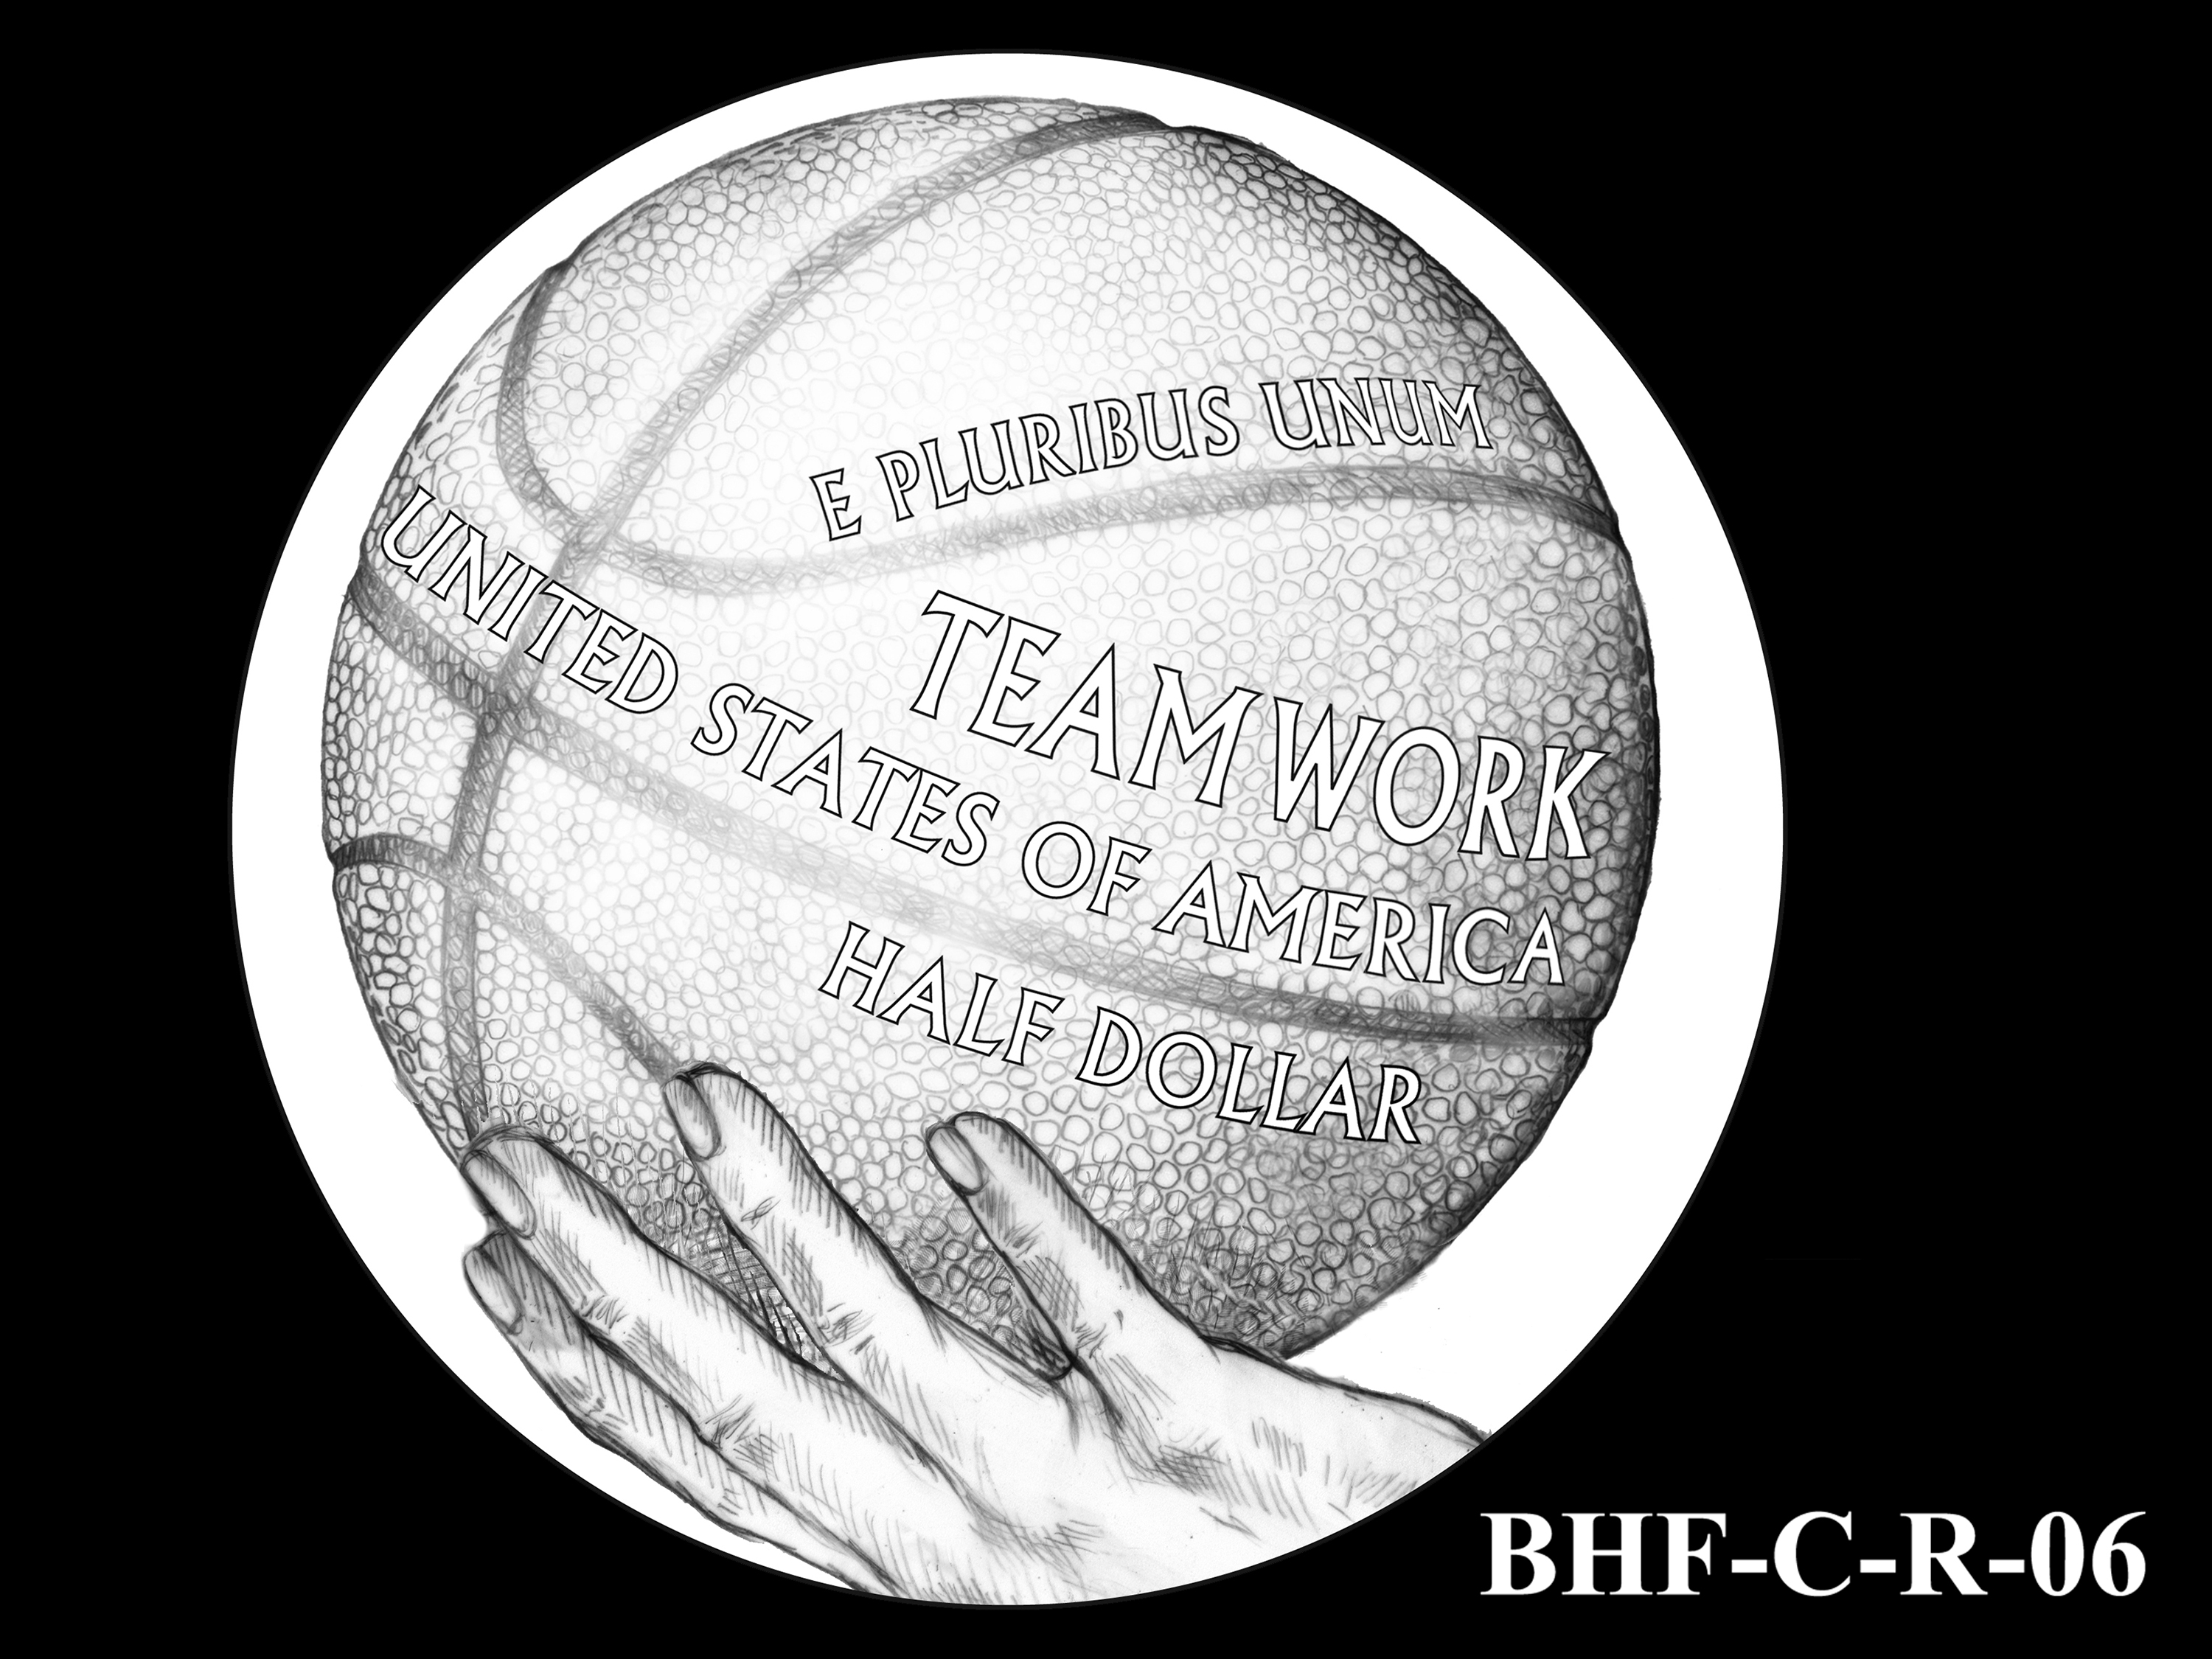 BHF-C-R-06 -- 2020 Basketball Hall of Fame Commemorative Coin Program - Clad Reverse